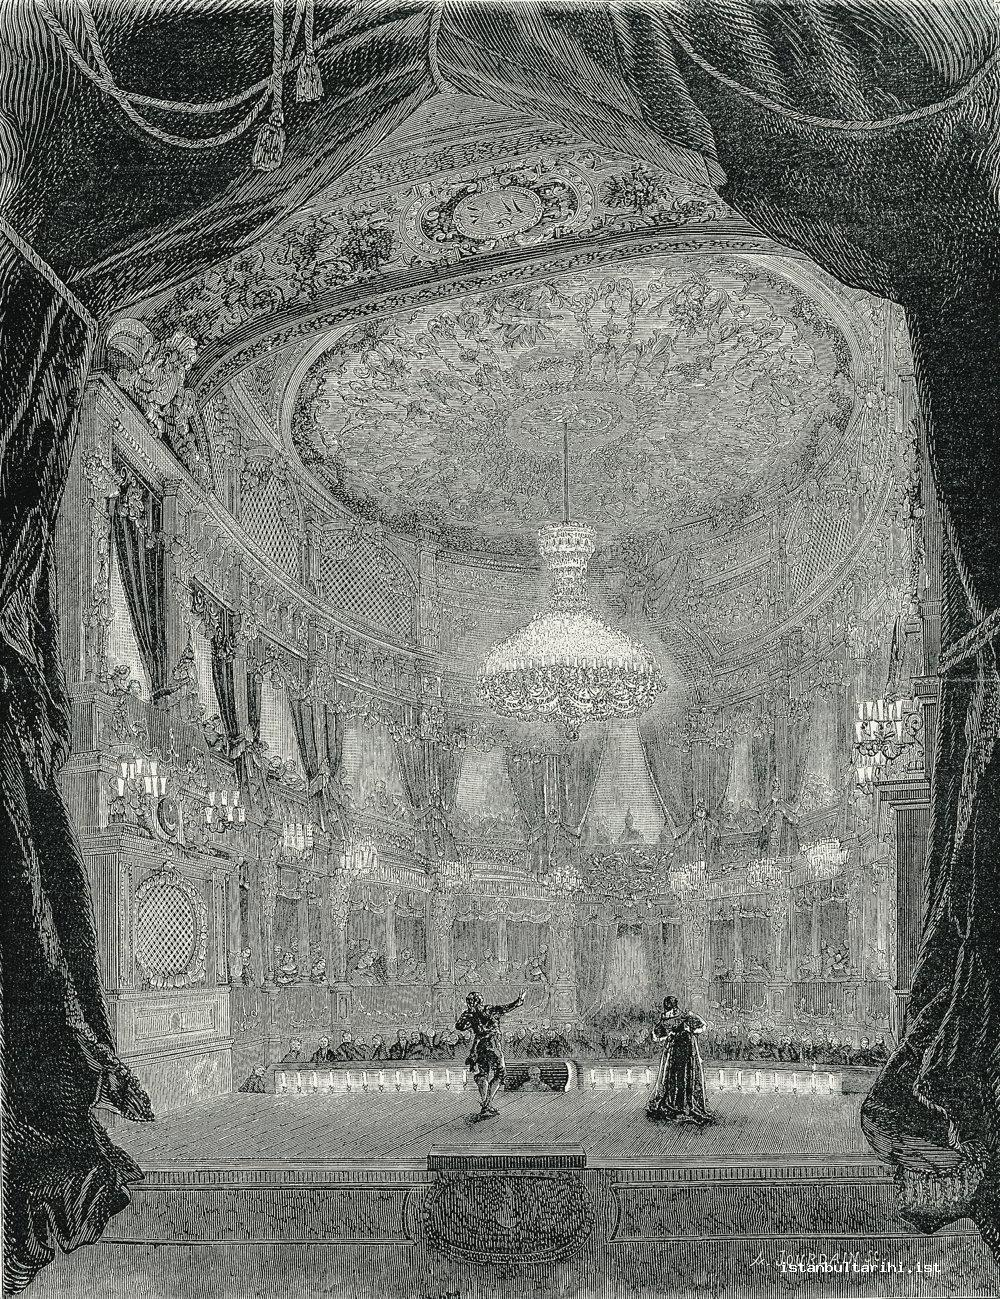 20- A play in Dolmabahçe Palace Theatre the decoration of which was done by F.Séchan, the decorator of French Opera building (<em>L'illustration</em>, 25 June 1859)